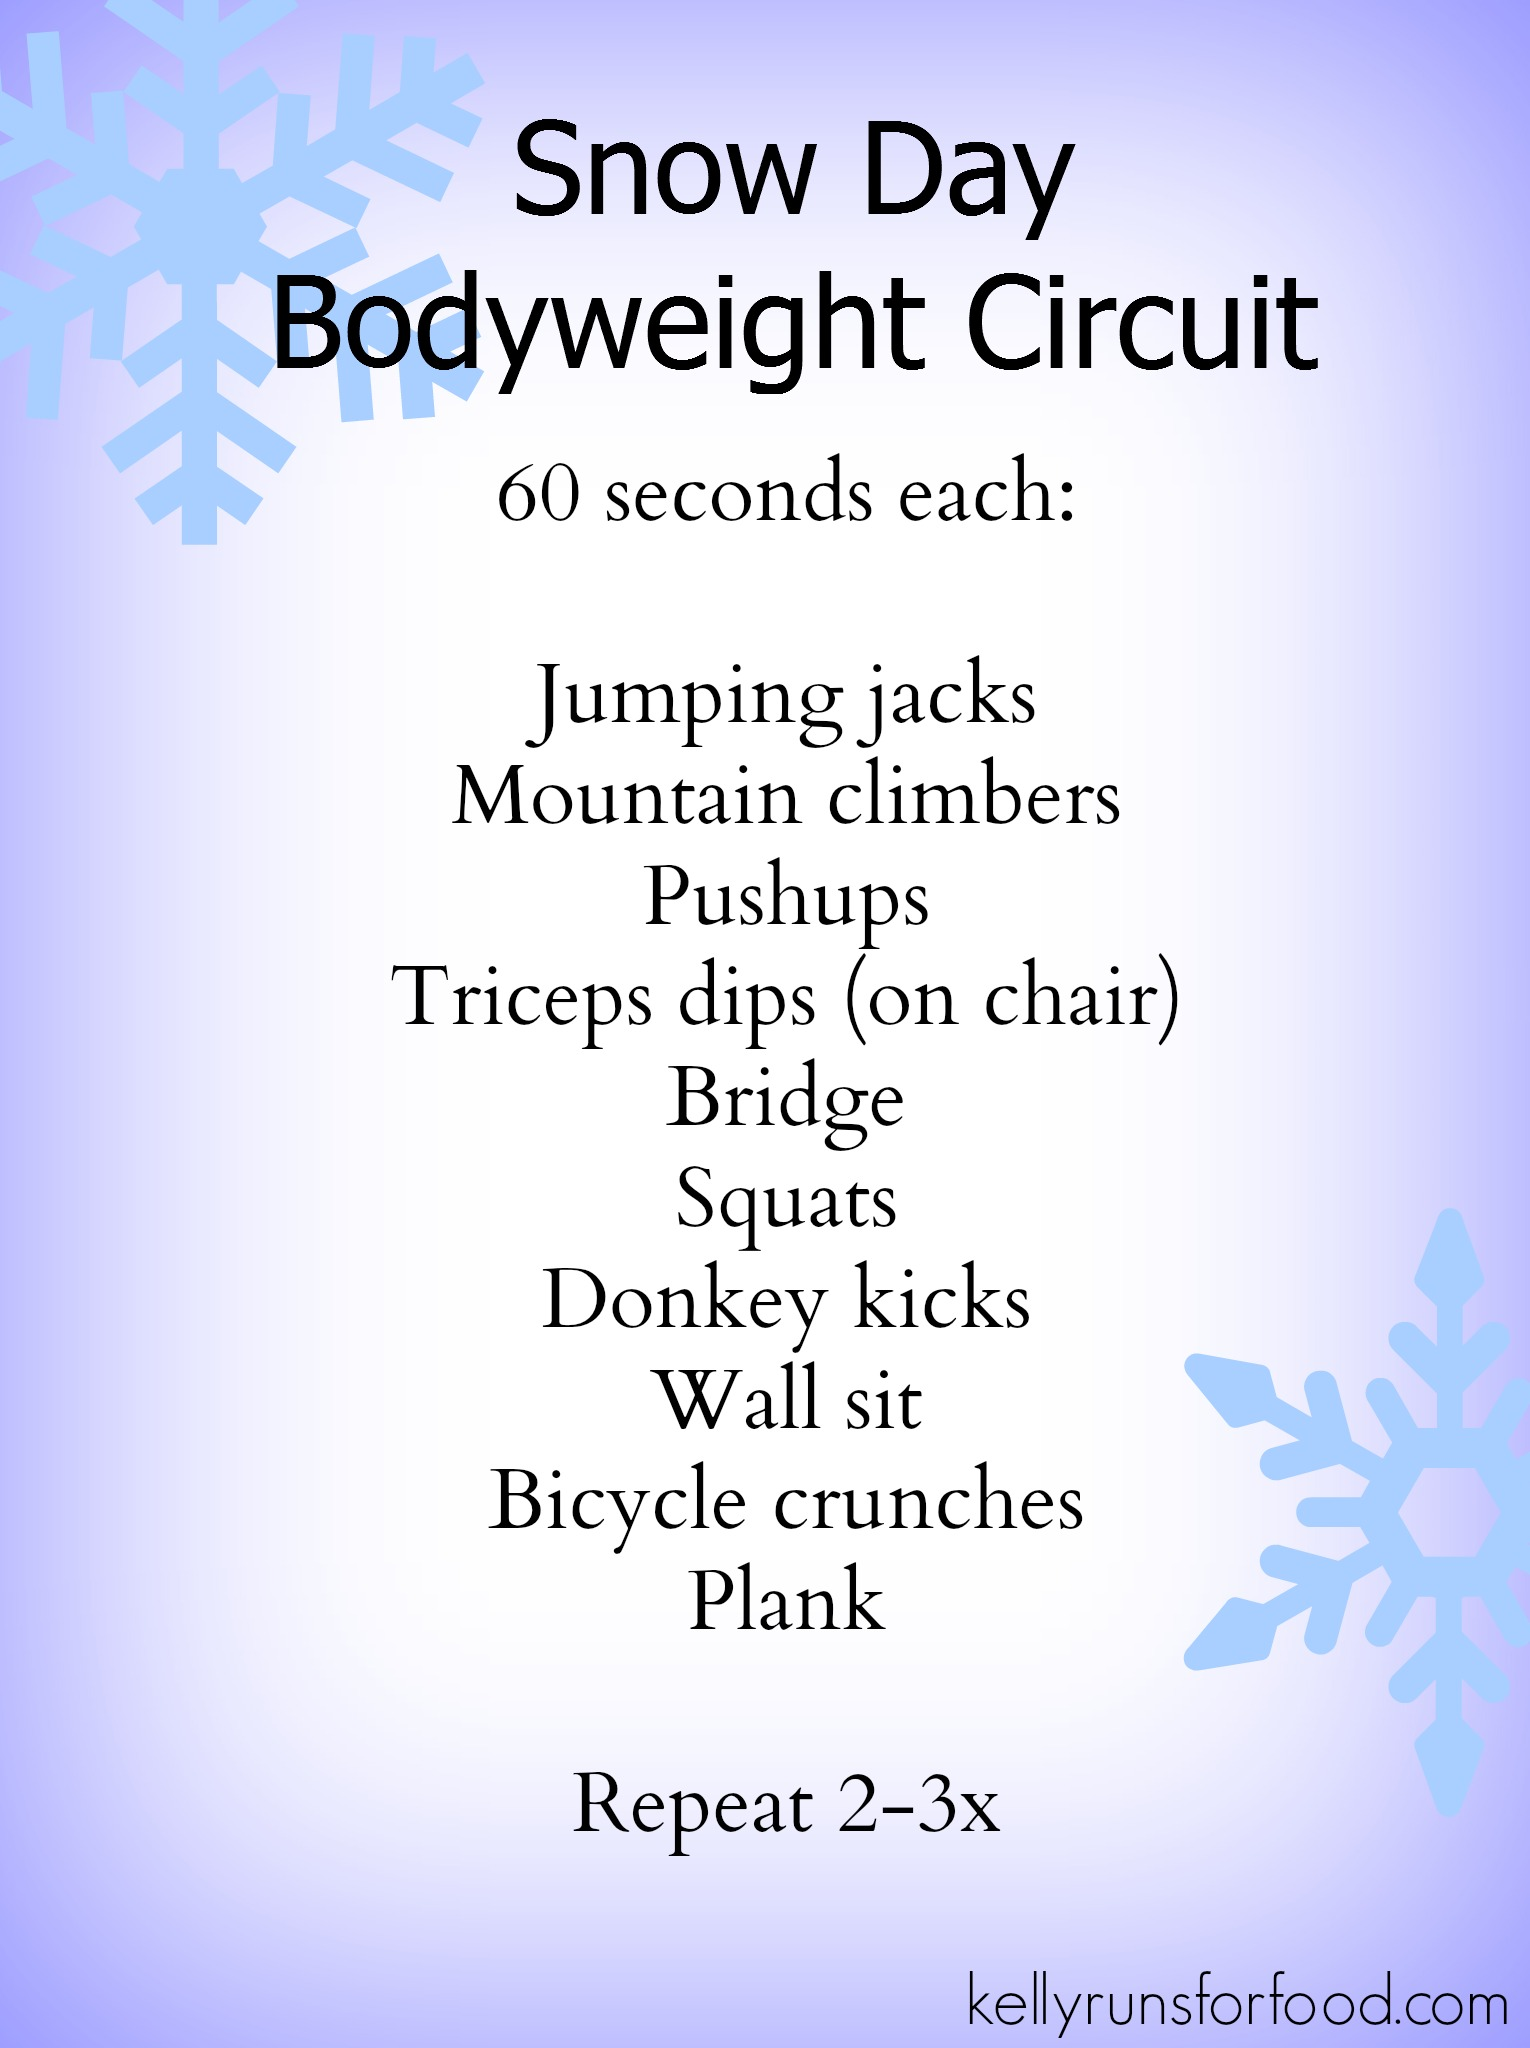 Snow Day bodyweight circuit